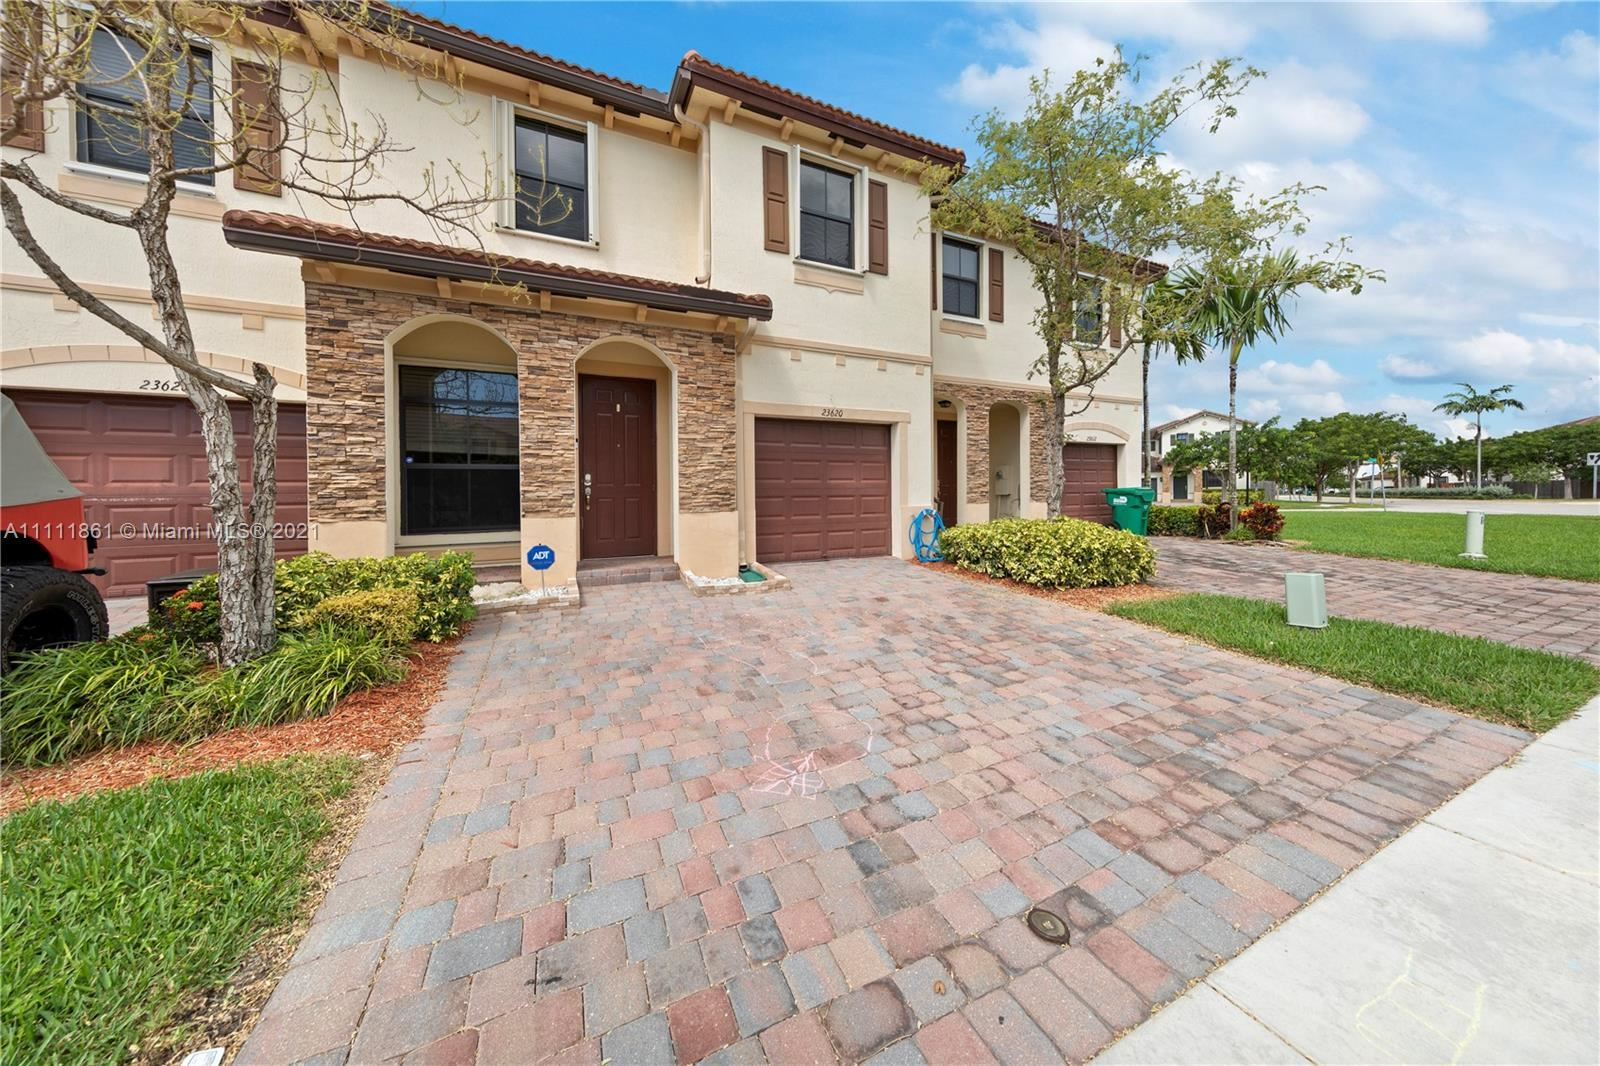 23620 SW 118th Ave, Homestead, FL 33032 - #: A11111861